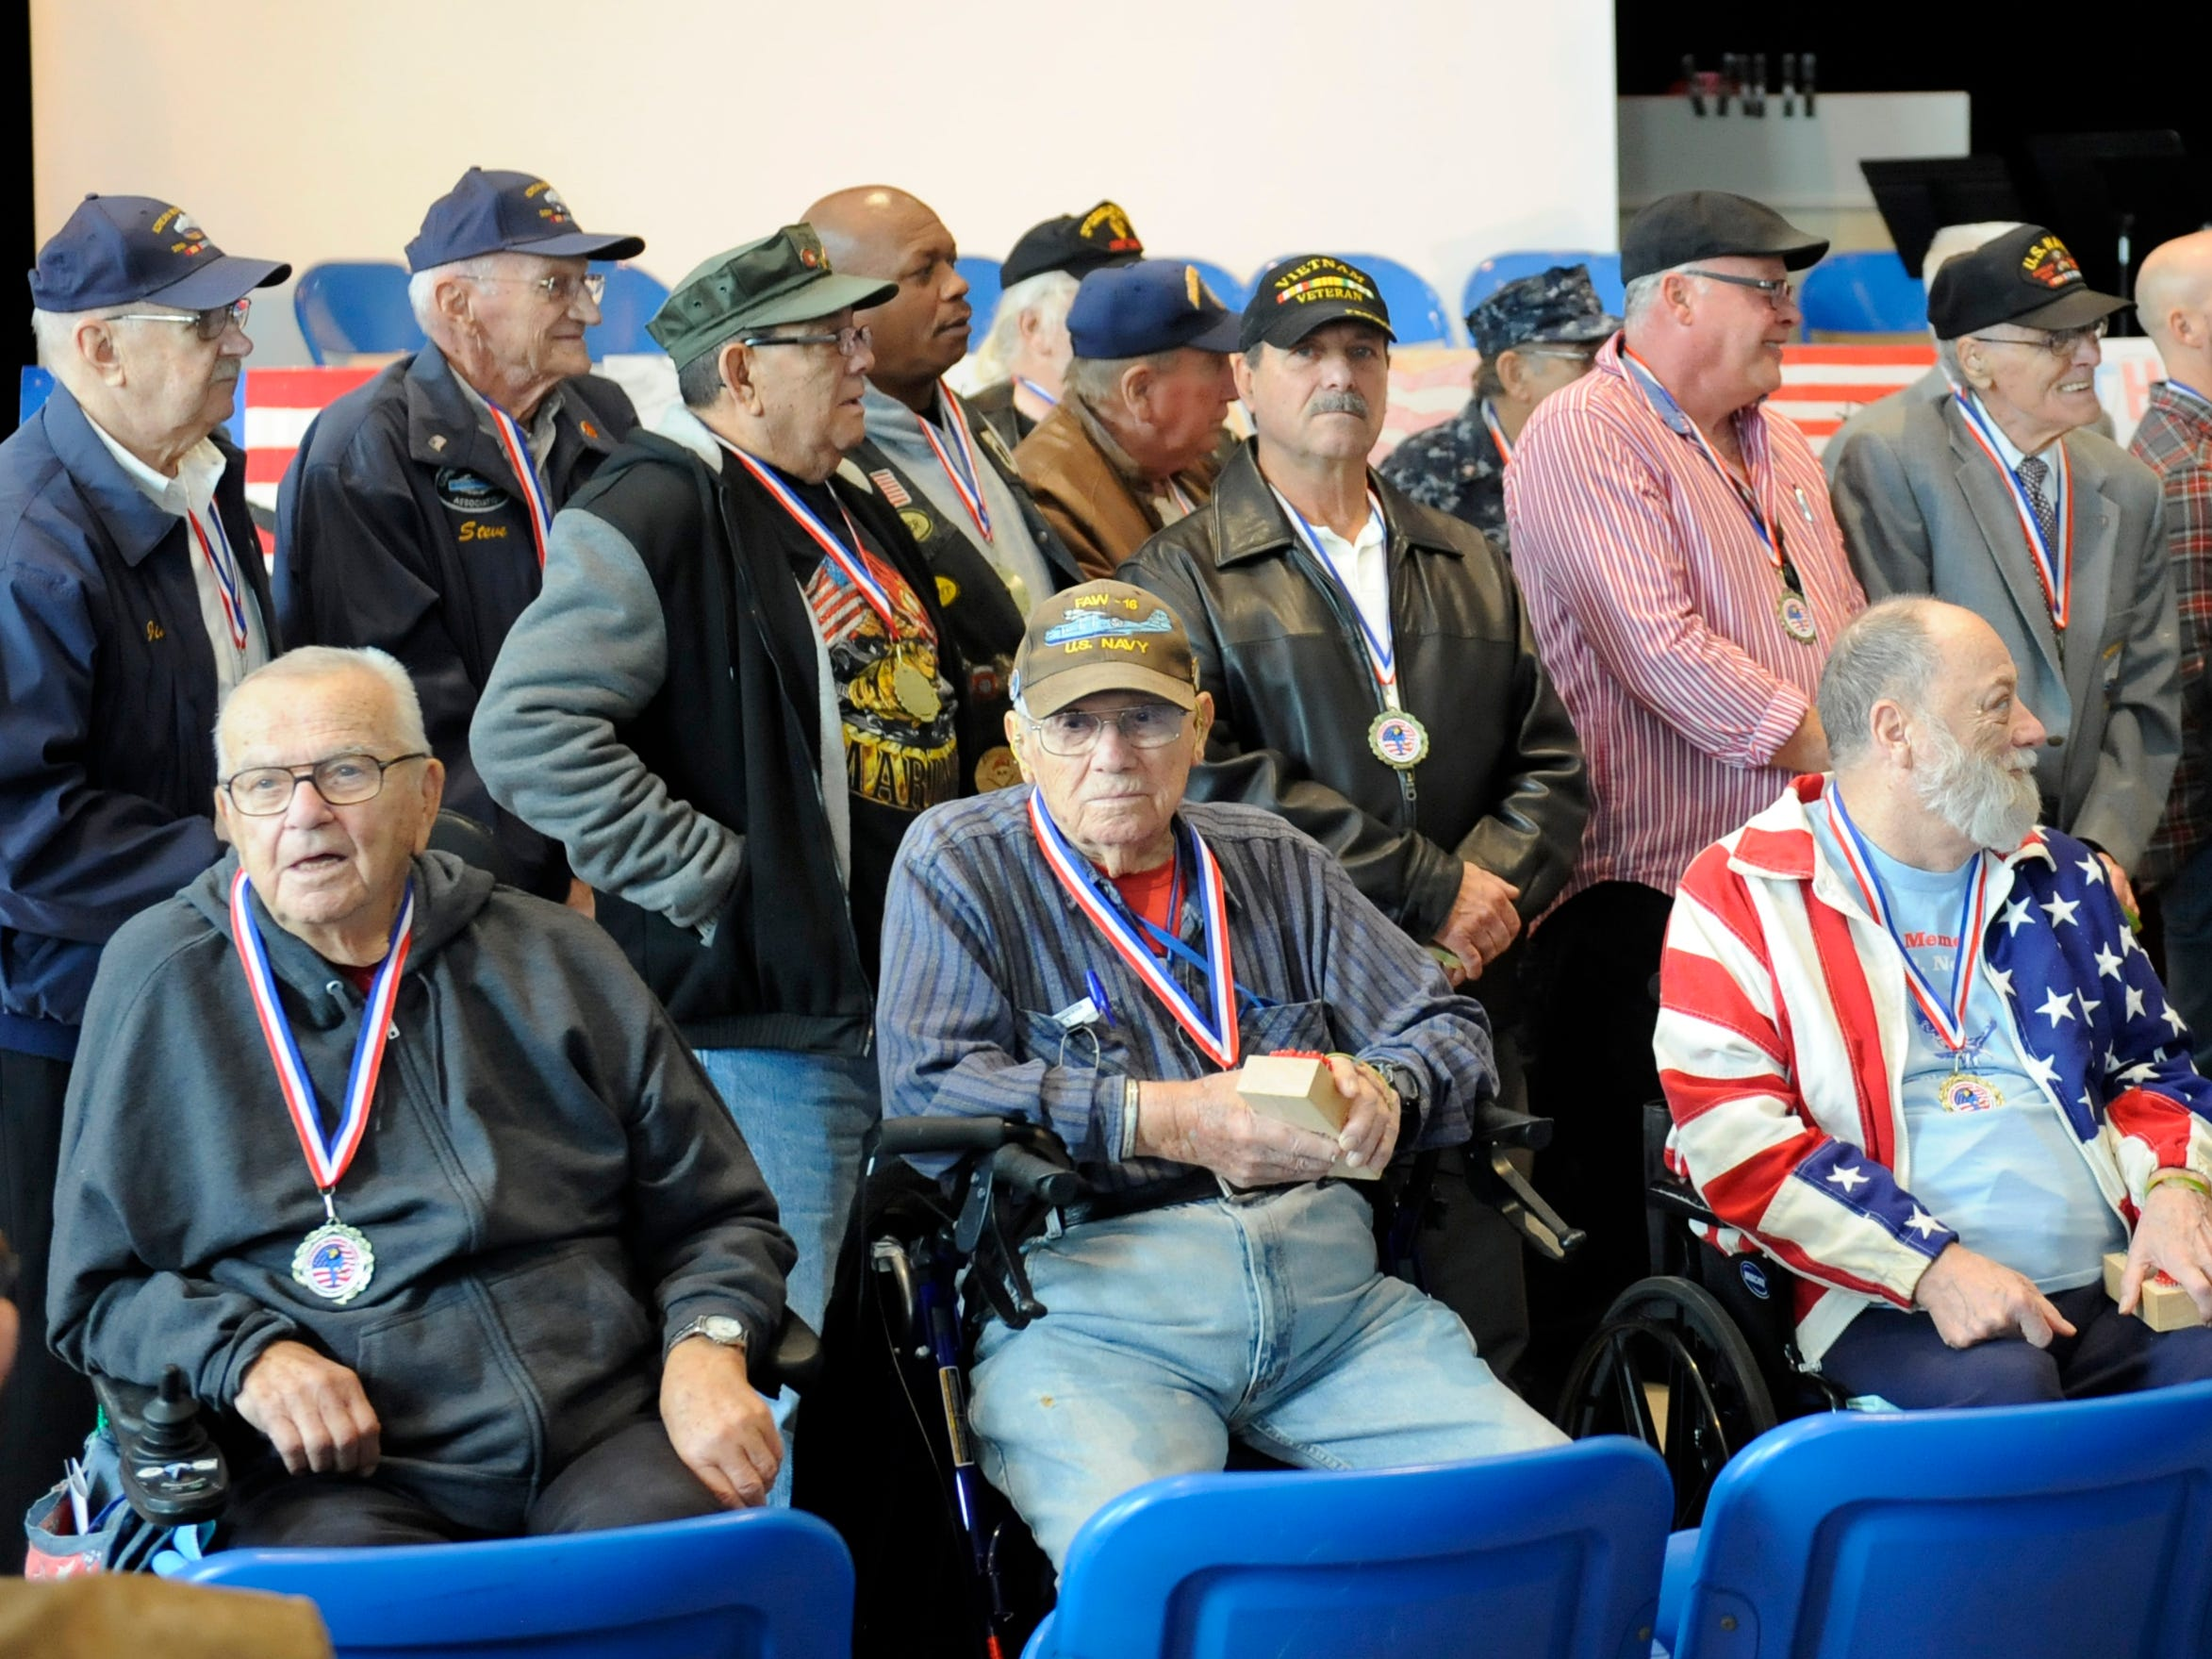 Over 30 veterans attended a special assembly honoring heroes at Veterans Memorial School on Wednesday, November 14, 2018.